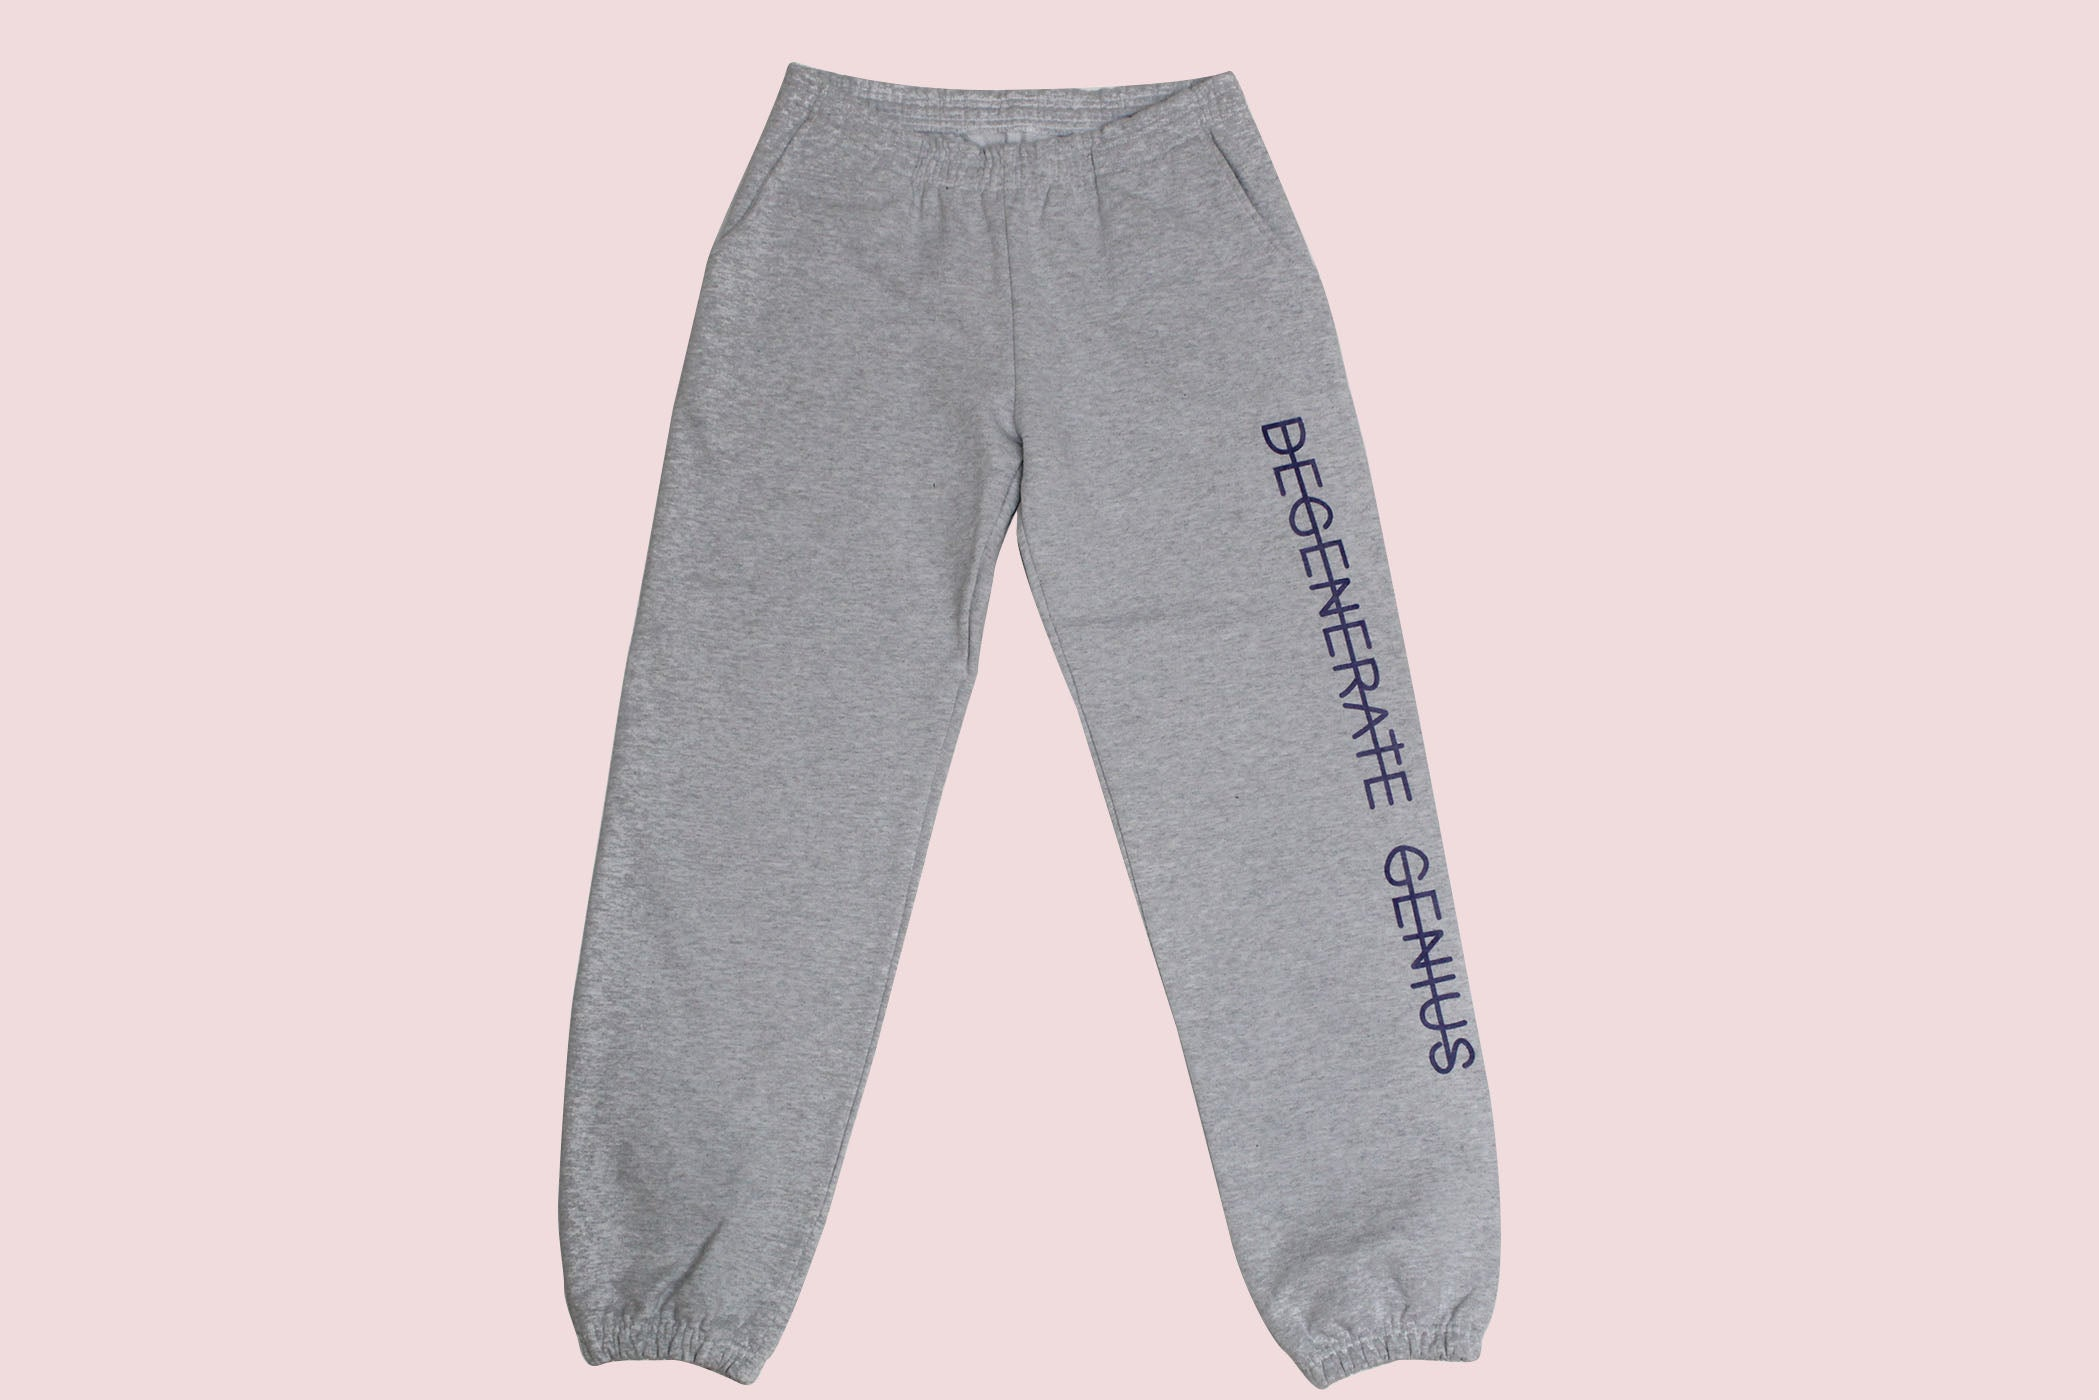 Degenerate Genius Pants - Grey